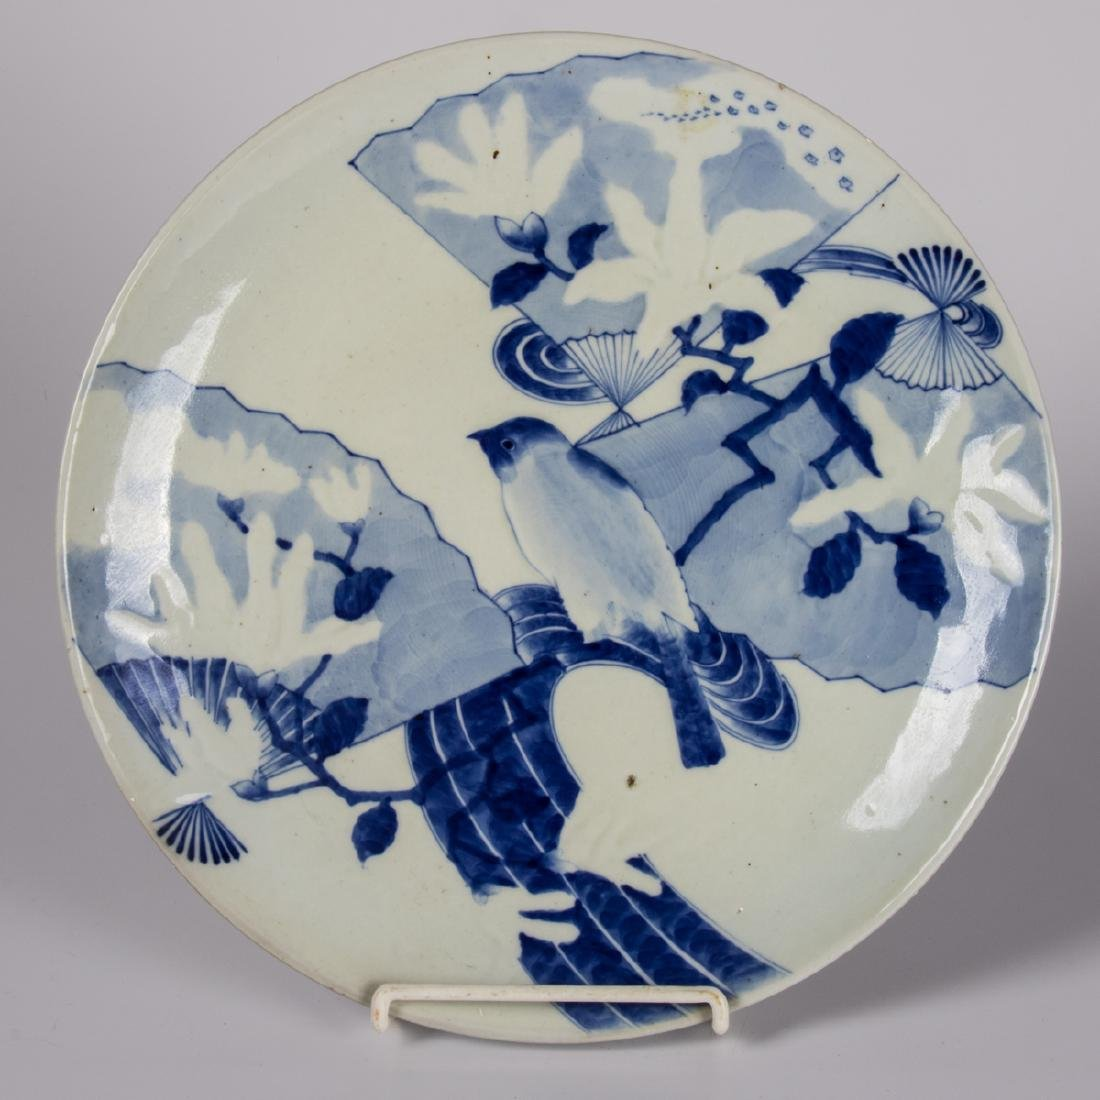 A Japanese Blue and White Porcelain Charger, Meiji